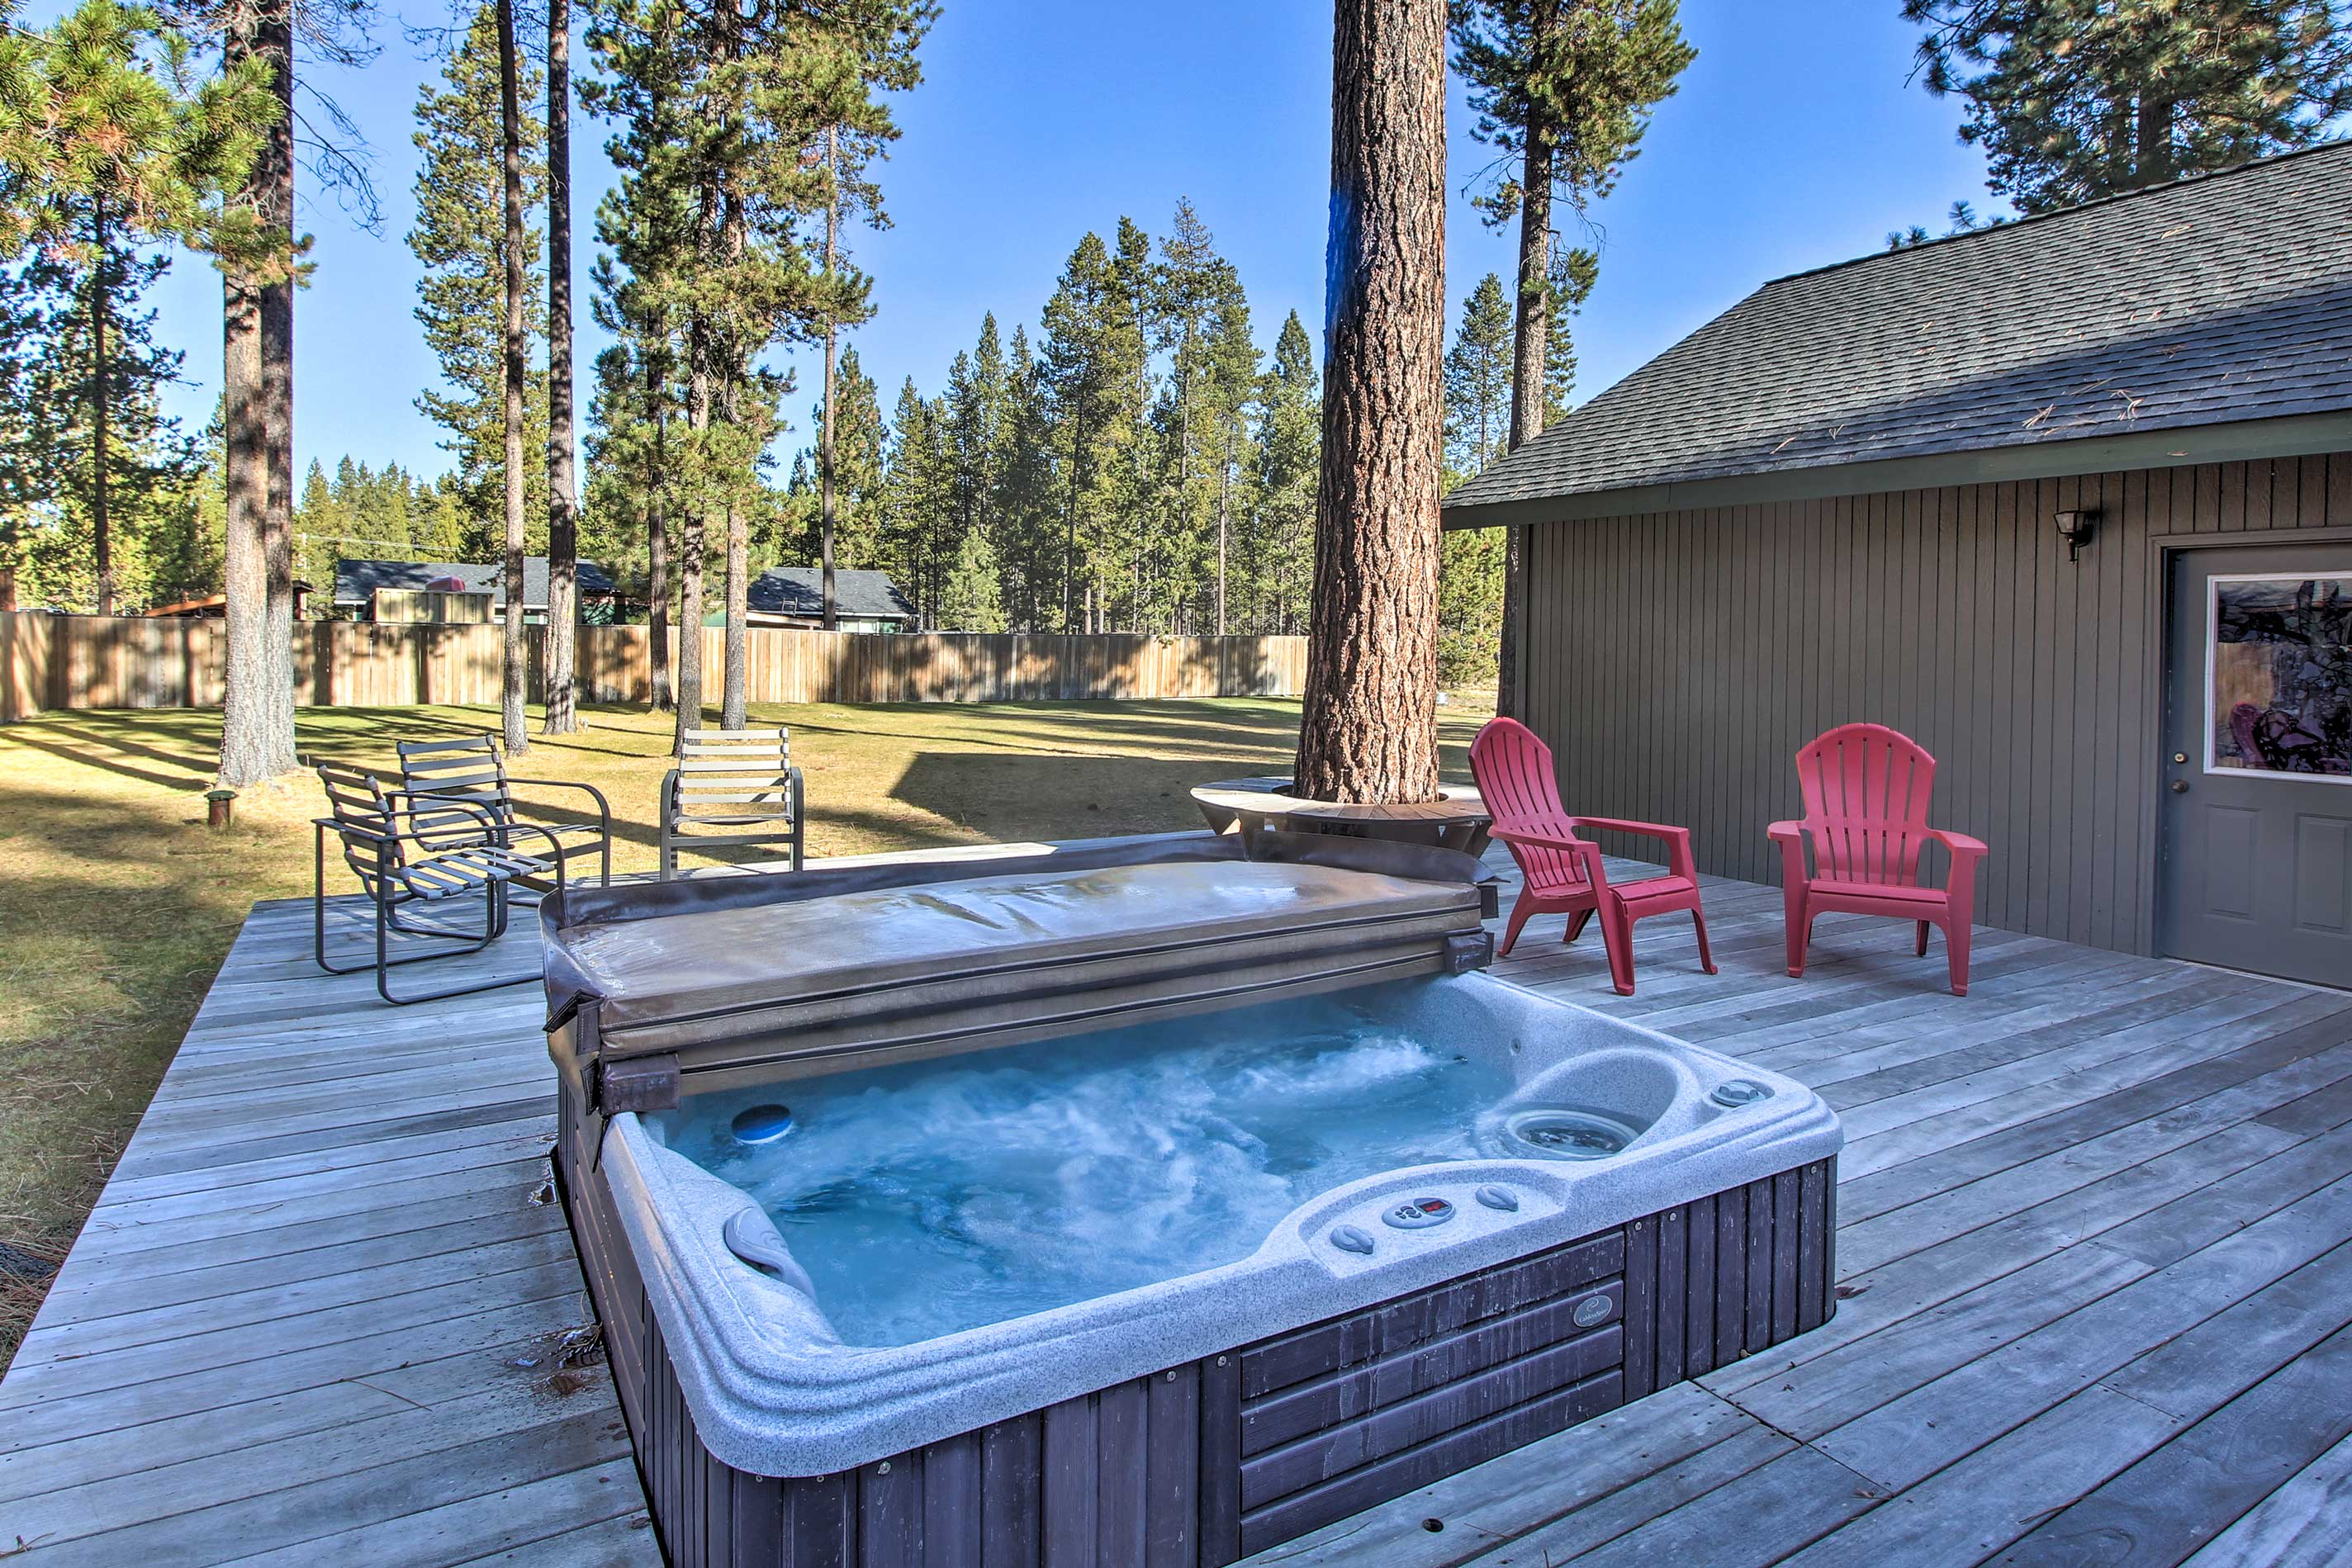 Admire the picturesque views from the privacy of your own hot tub.